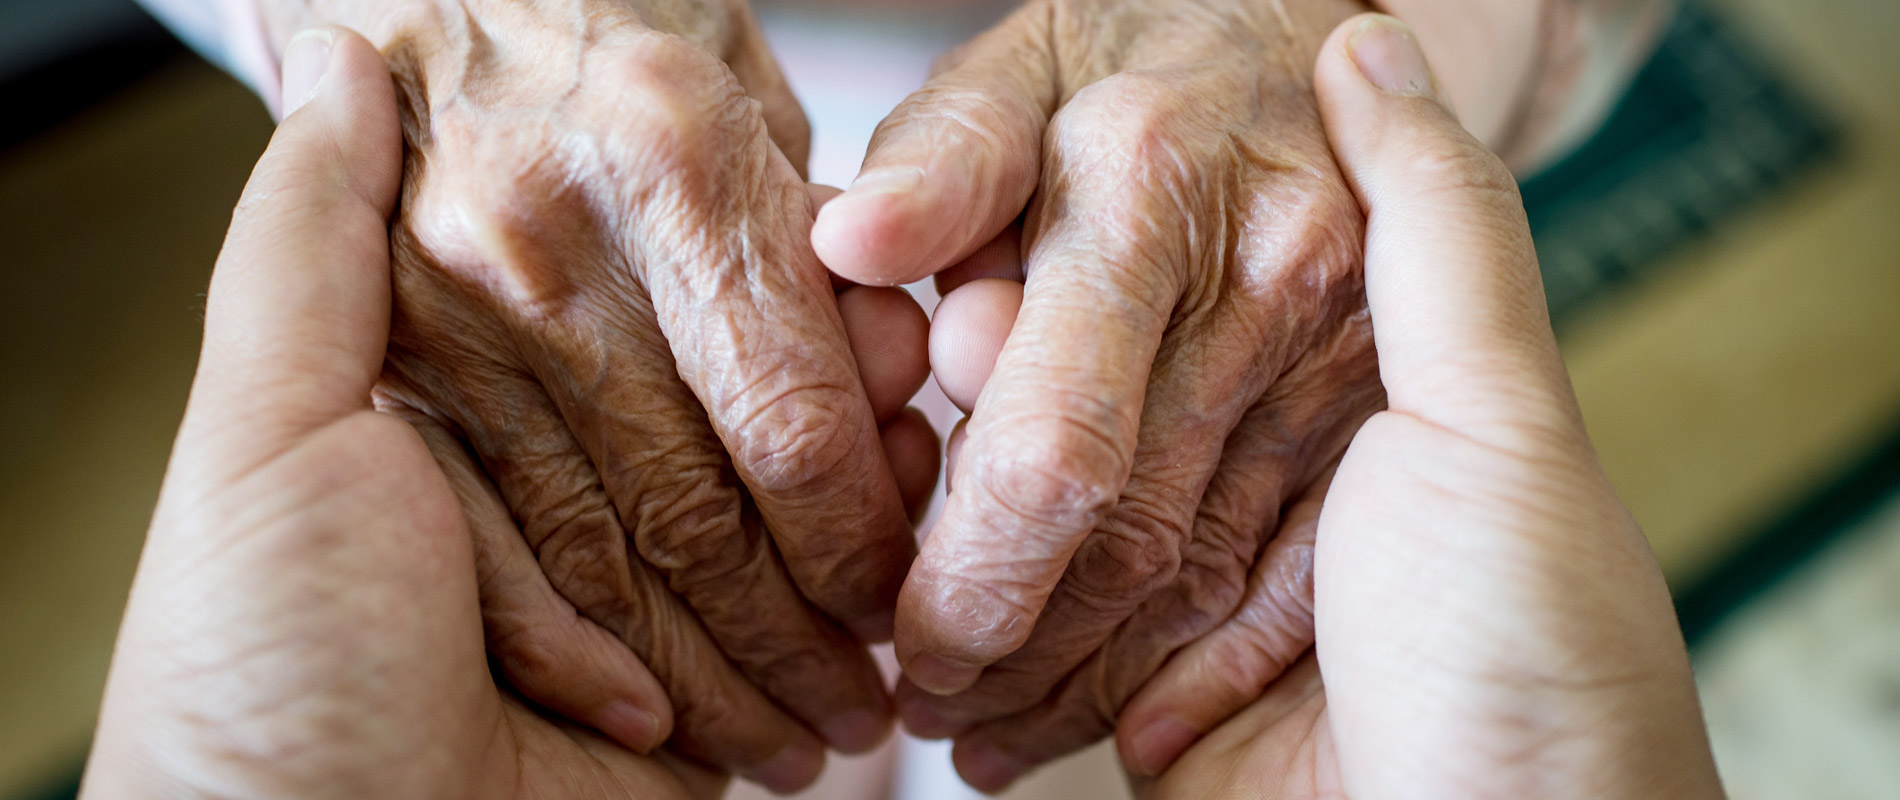 tc-giving-hands-senior-1900x800.jpg